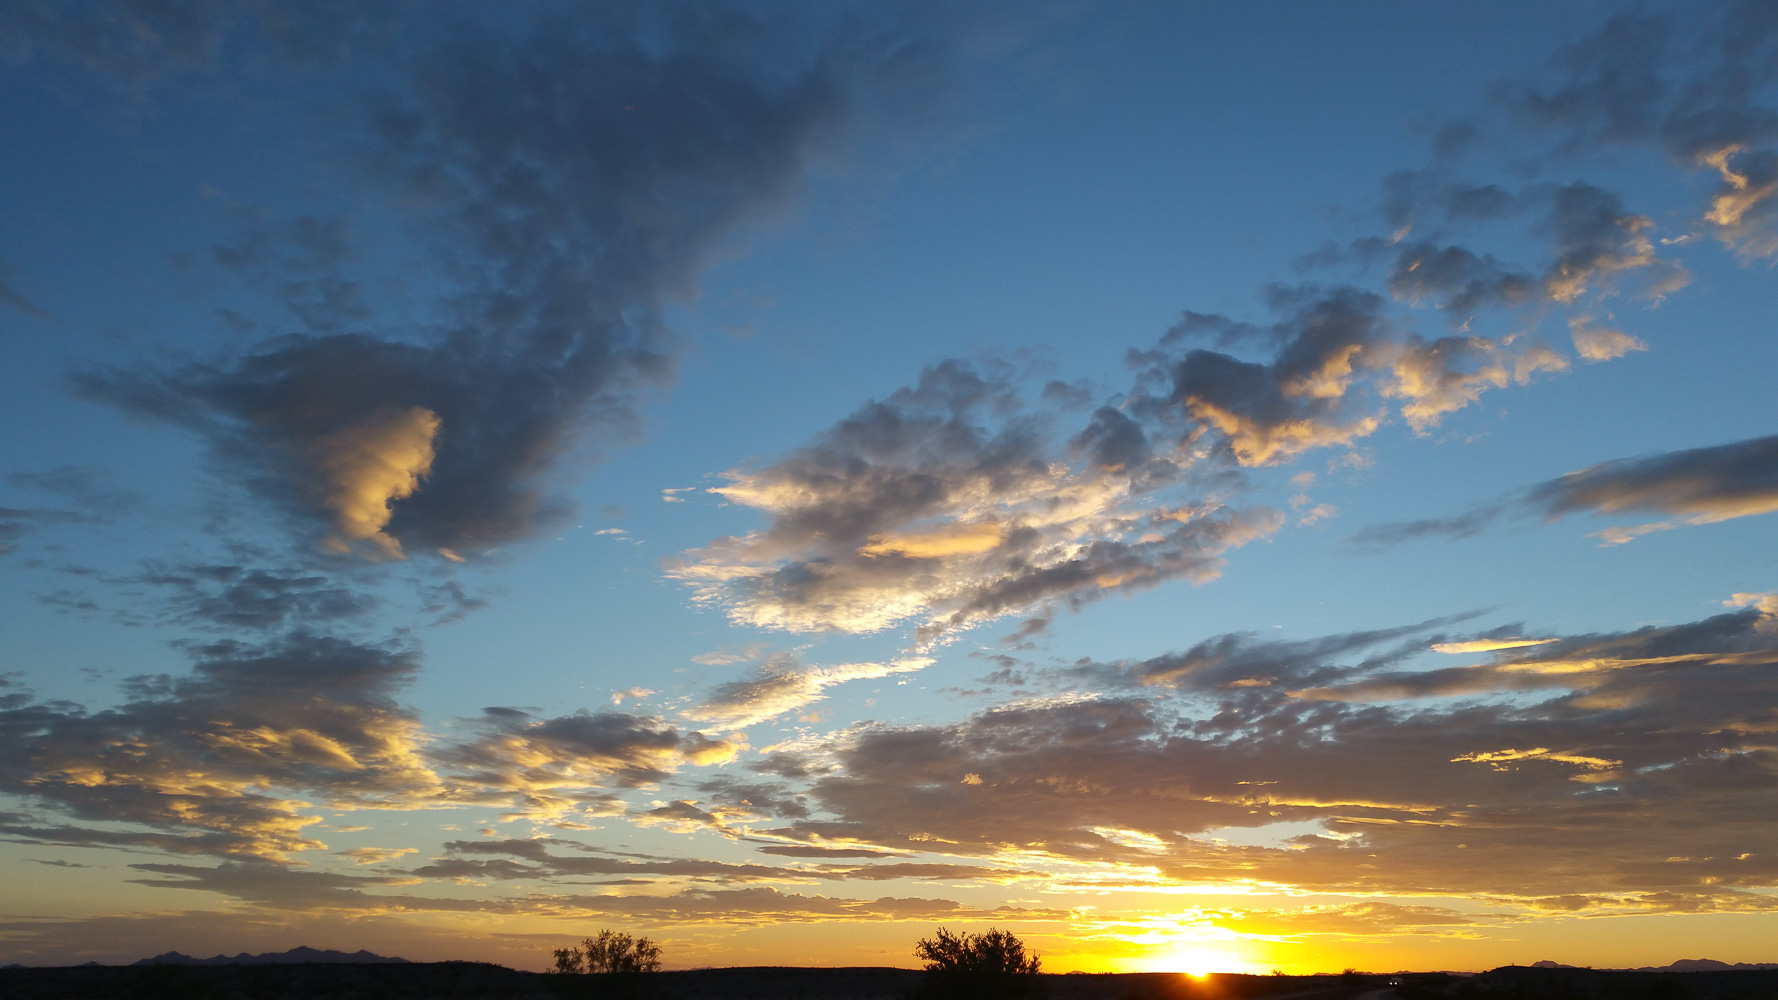 Sunset over the Mojave